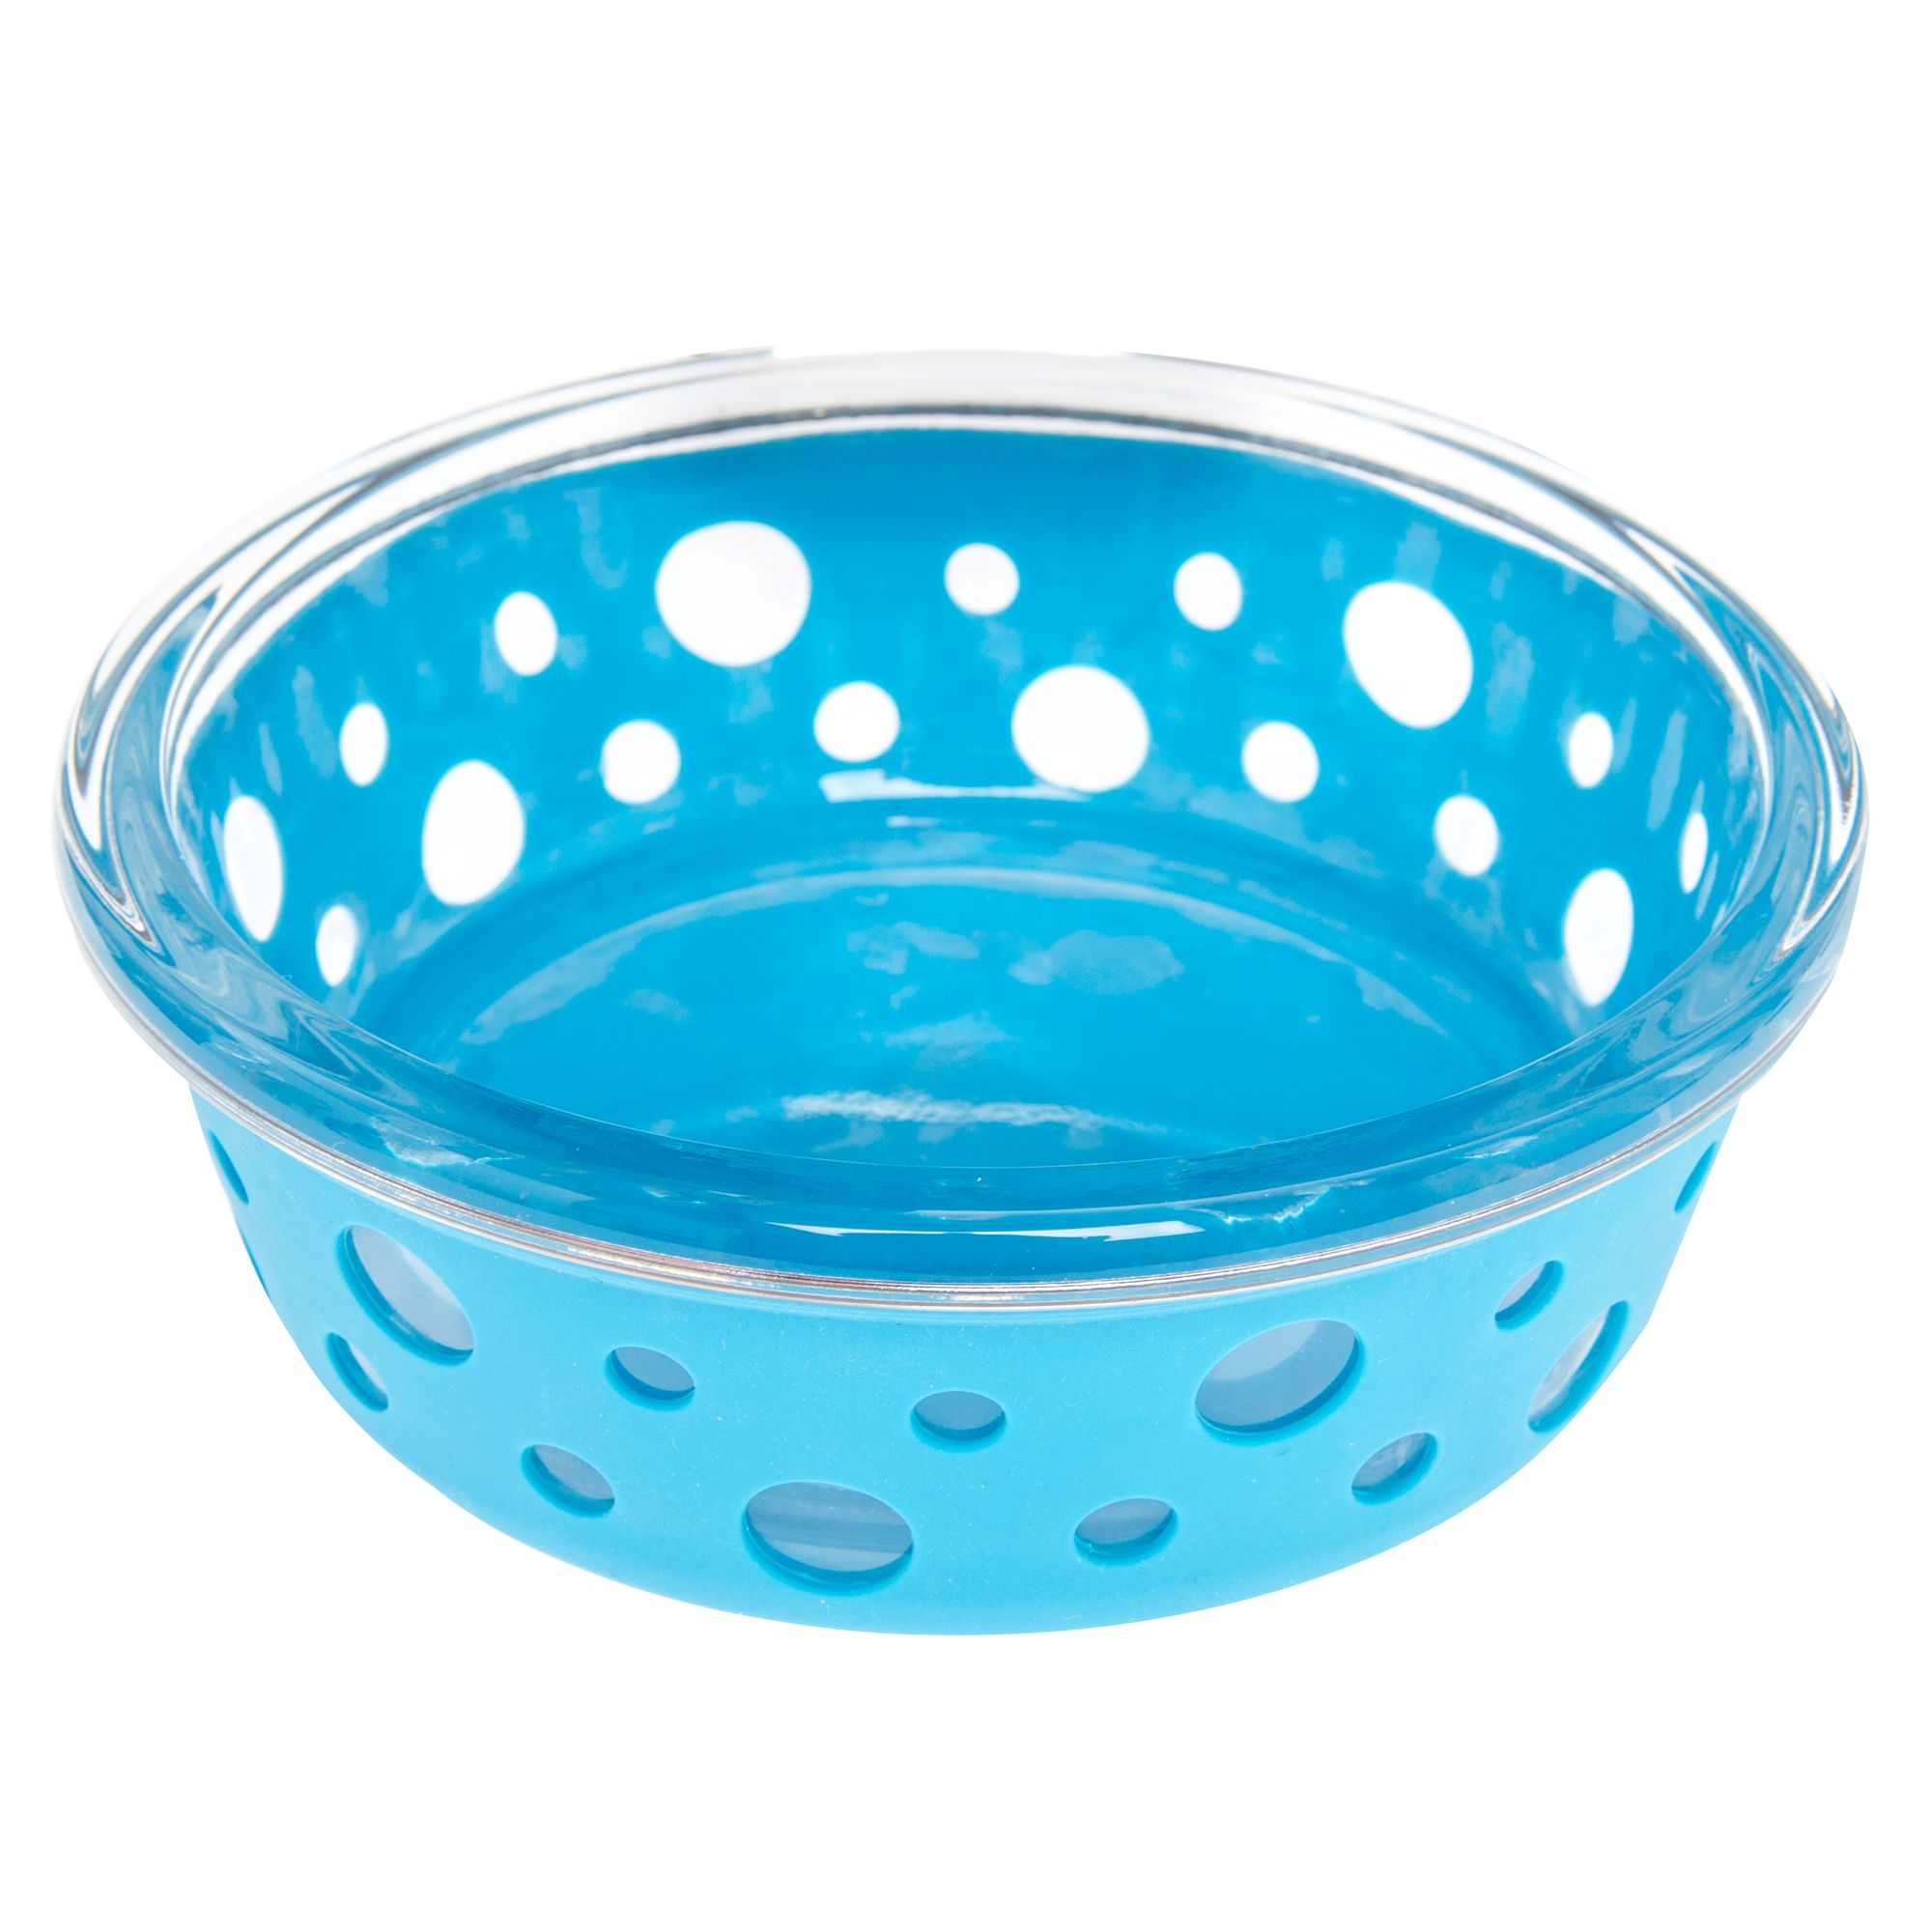 Top Paw Glass w/ Silcone Cover Dog Bowl, Blue 5261369